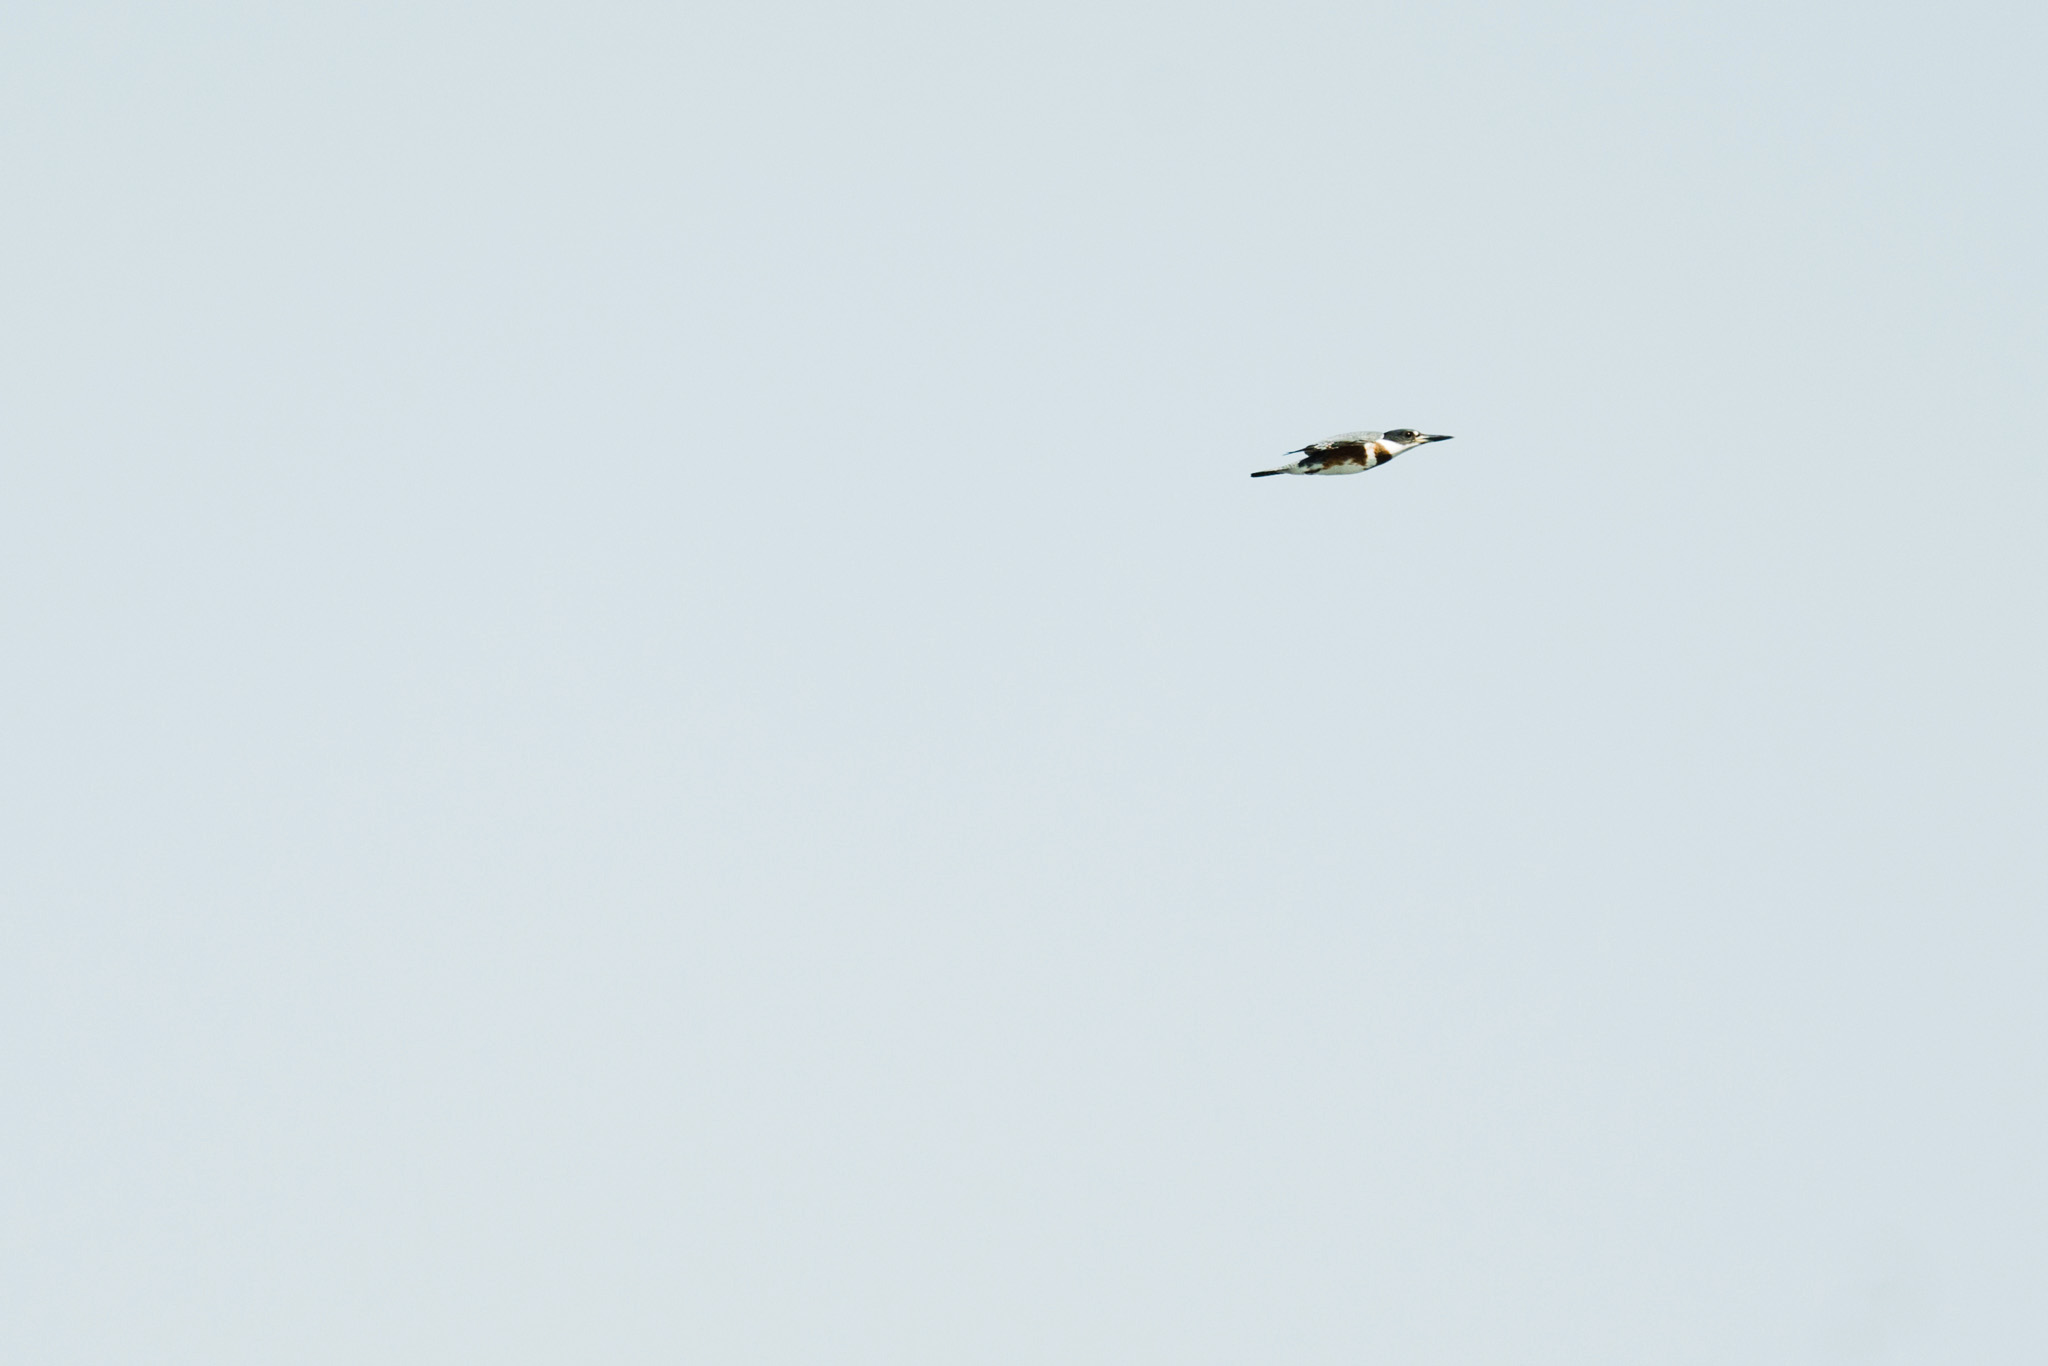 Belted Kingfisher flying above the Puget Sound in Seattle, Washington